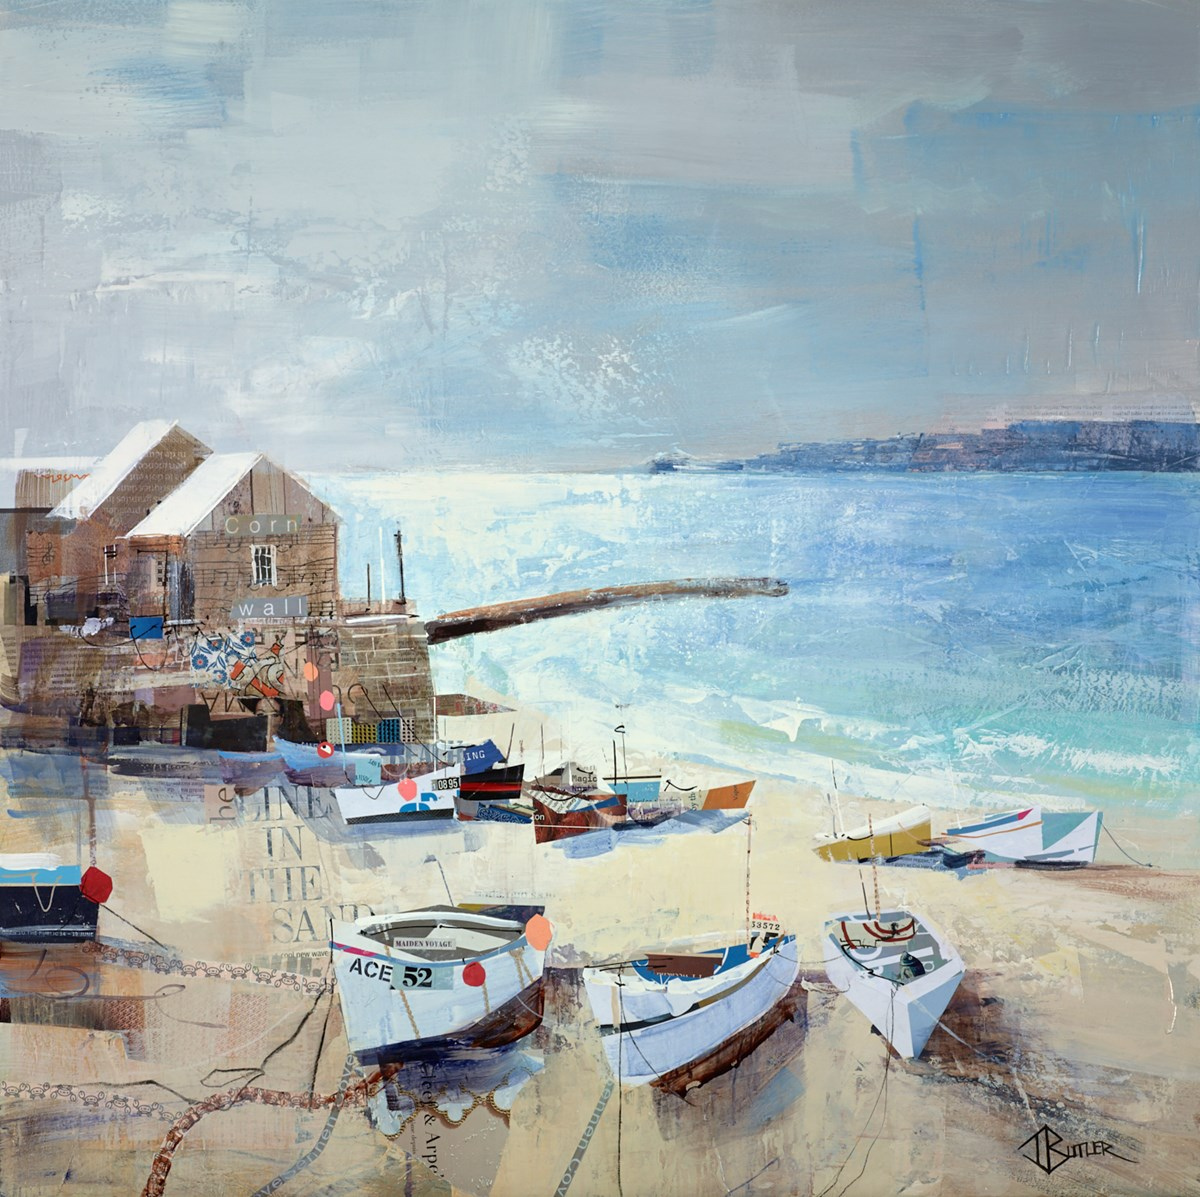 Seas the Day, Sennen Cove by tom butler -  sized 30x30 inches. Available from Whitewall Galleries